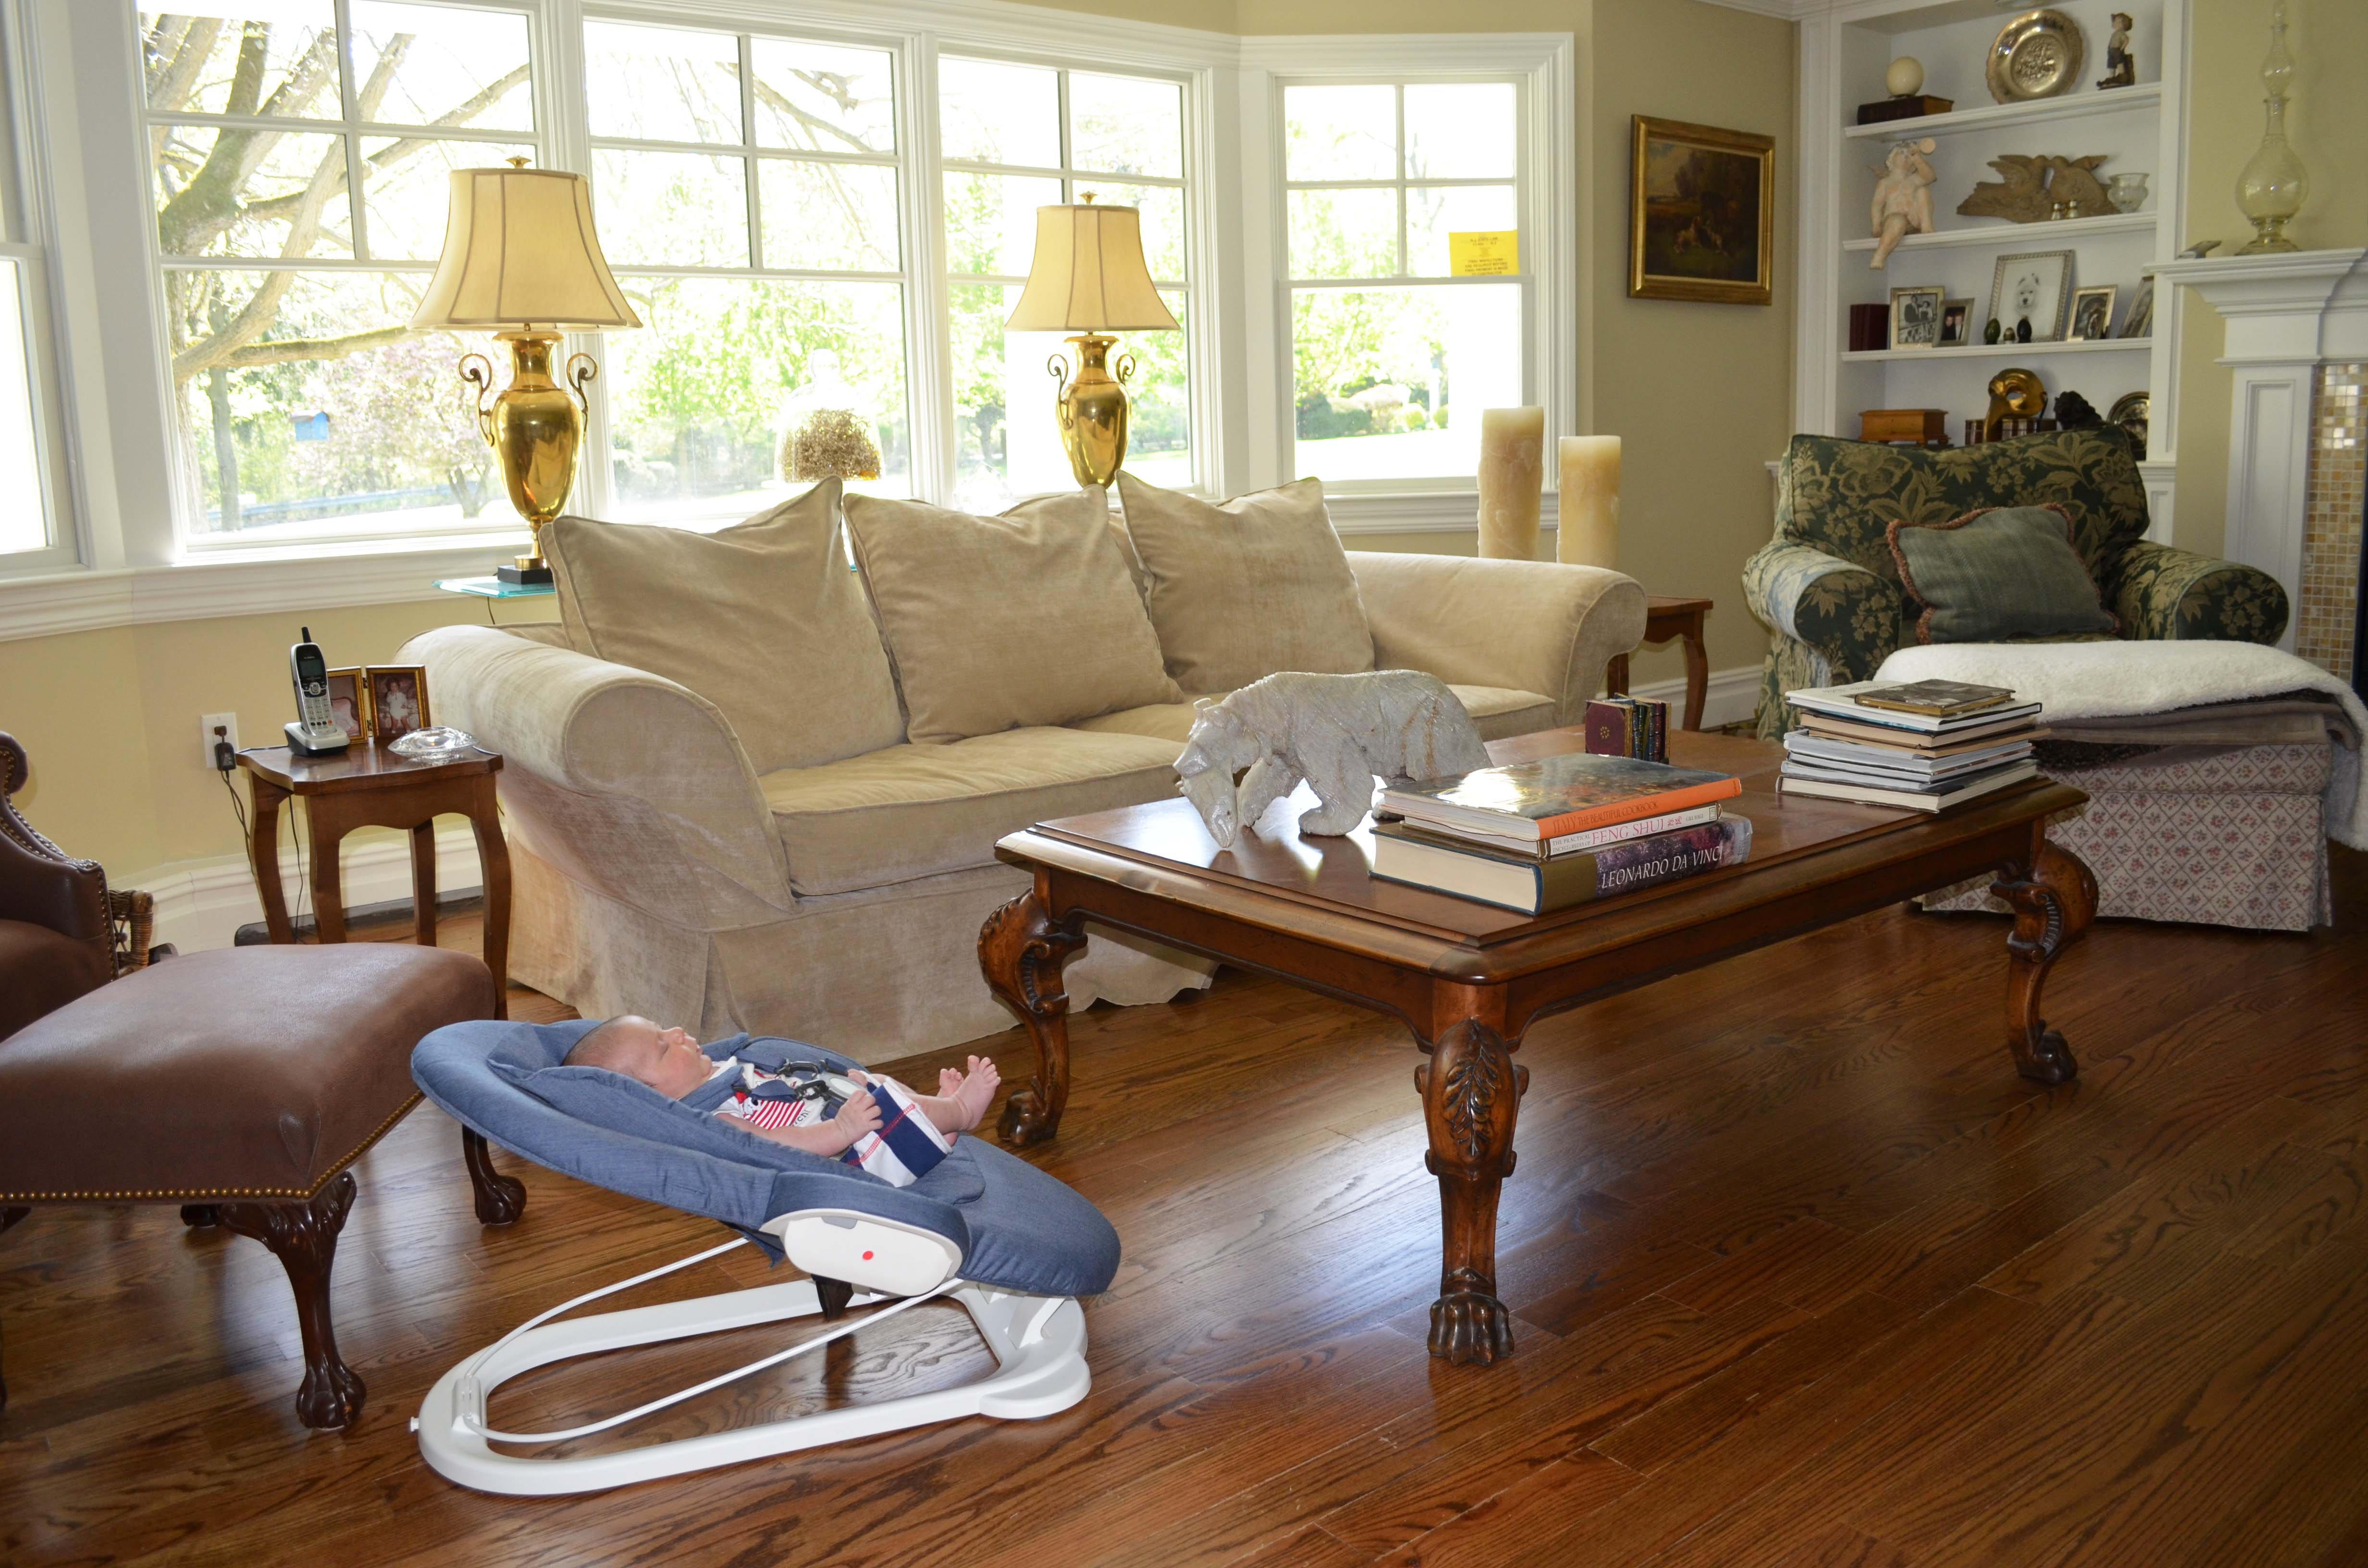 Stokke Steps All In One Seating System Giveaway